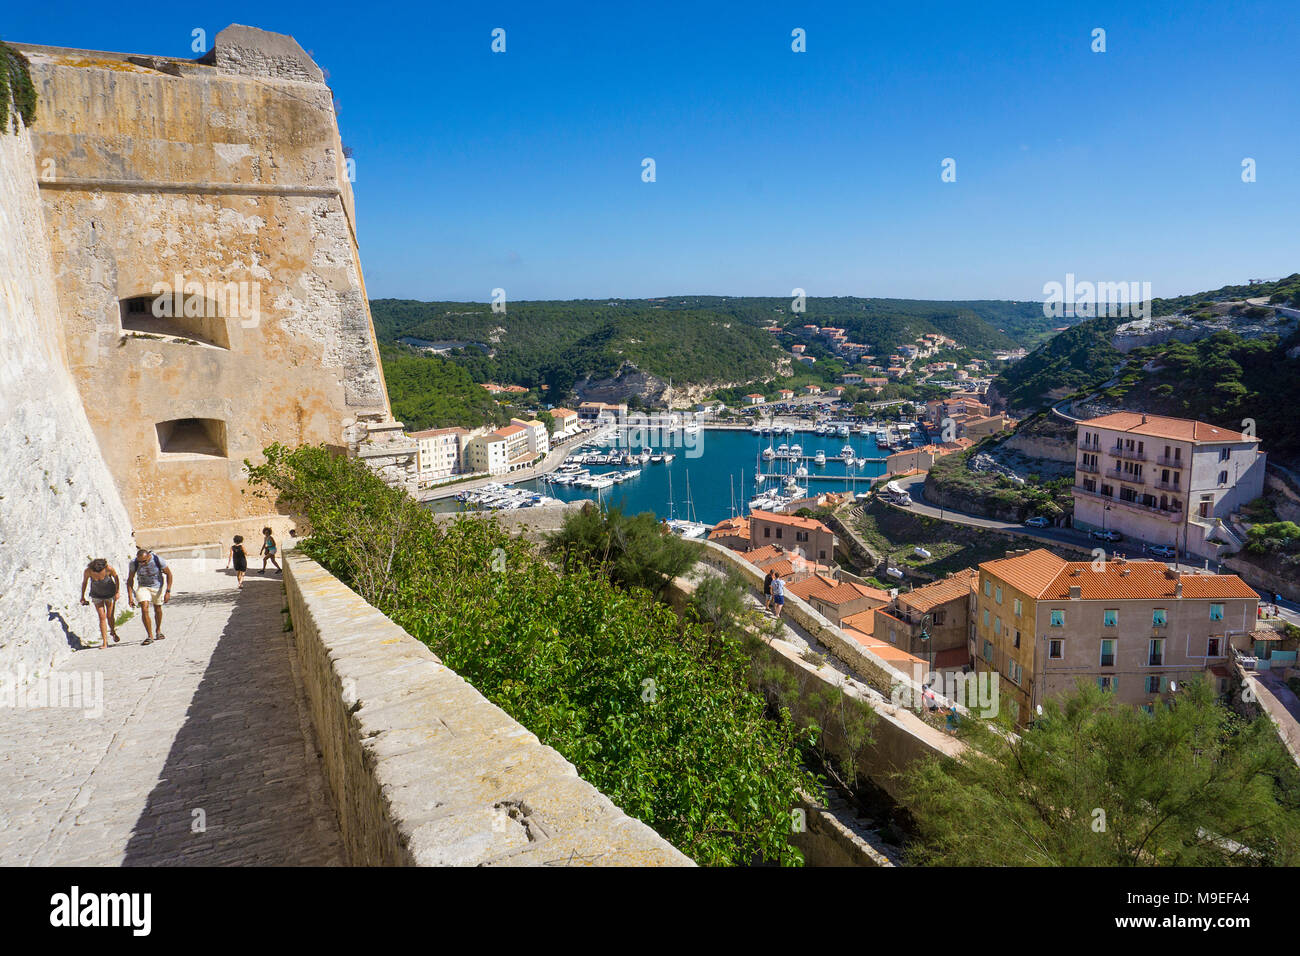 View from the citadel on harbour, Bonifacio, Corsica, France, Mediterranean, Europe - Stock Image